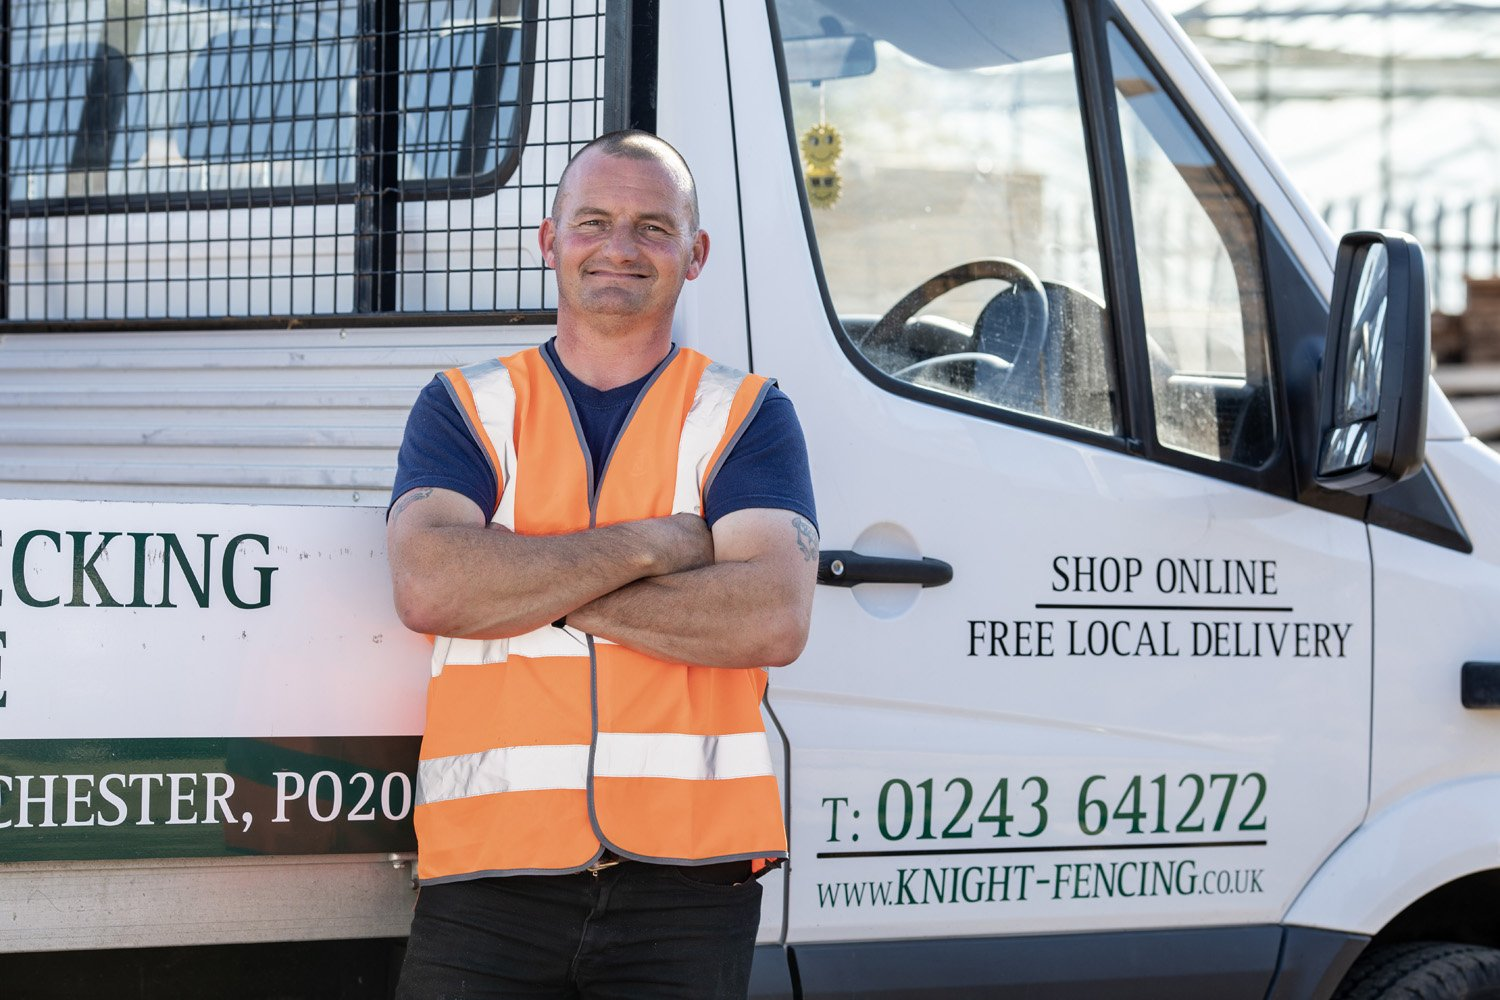 a man stood in front of the knight fencing truck